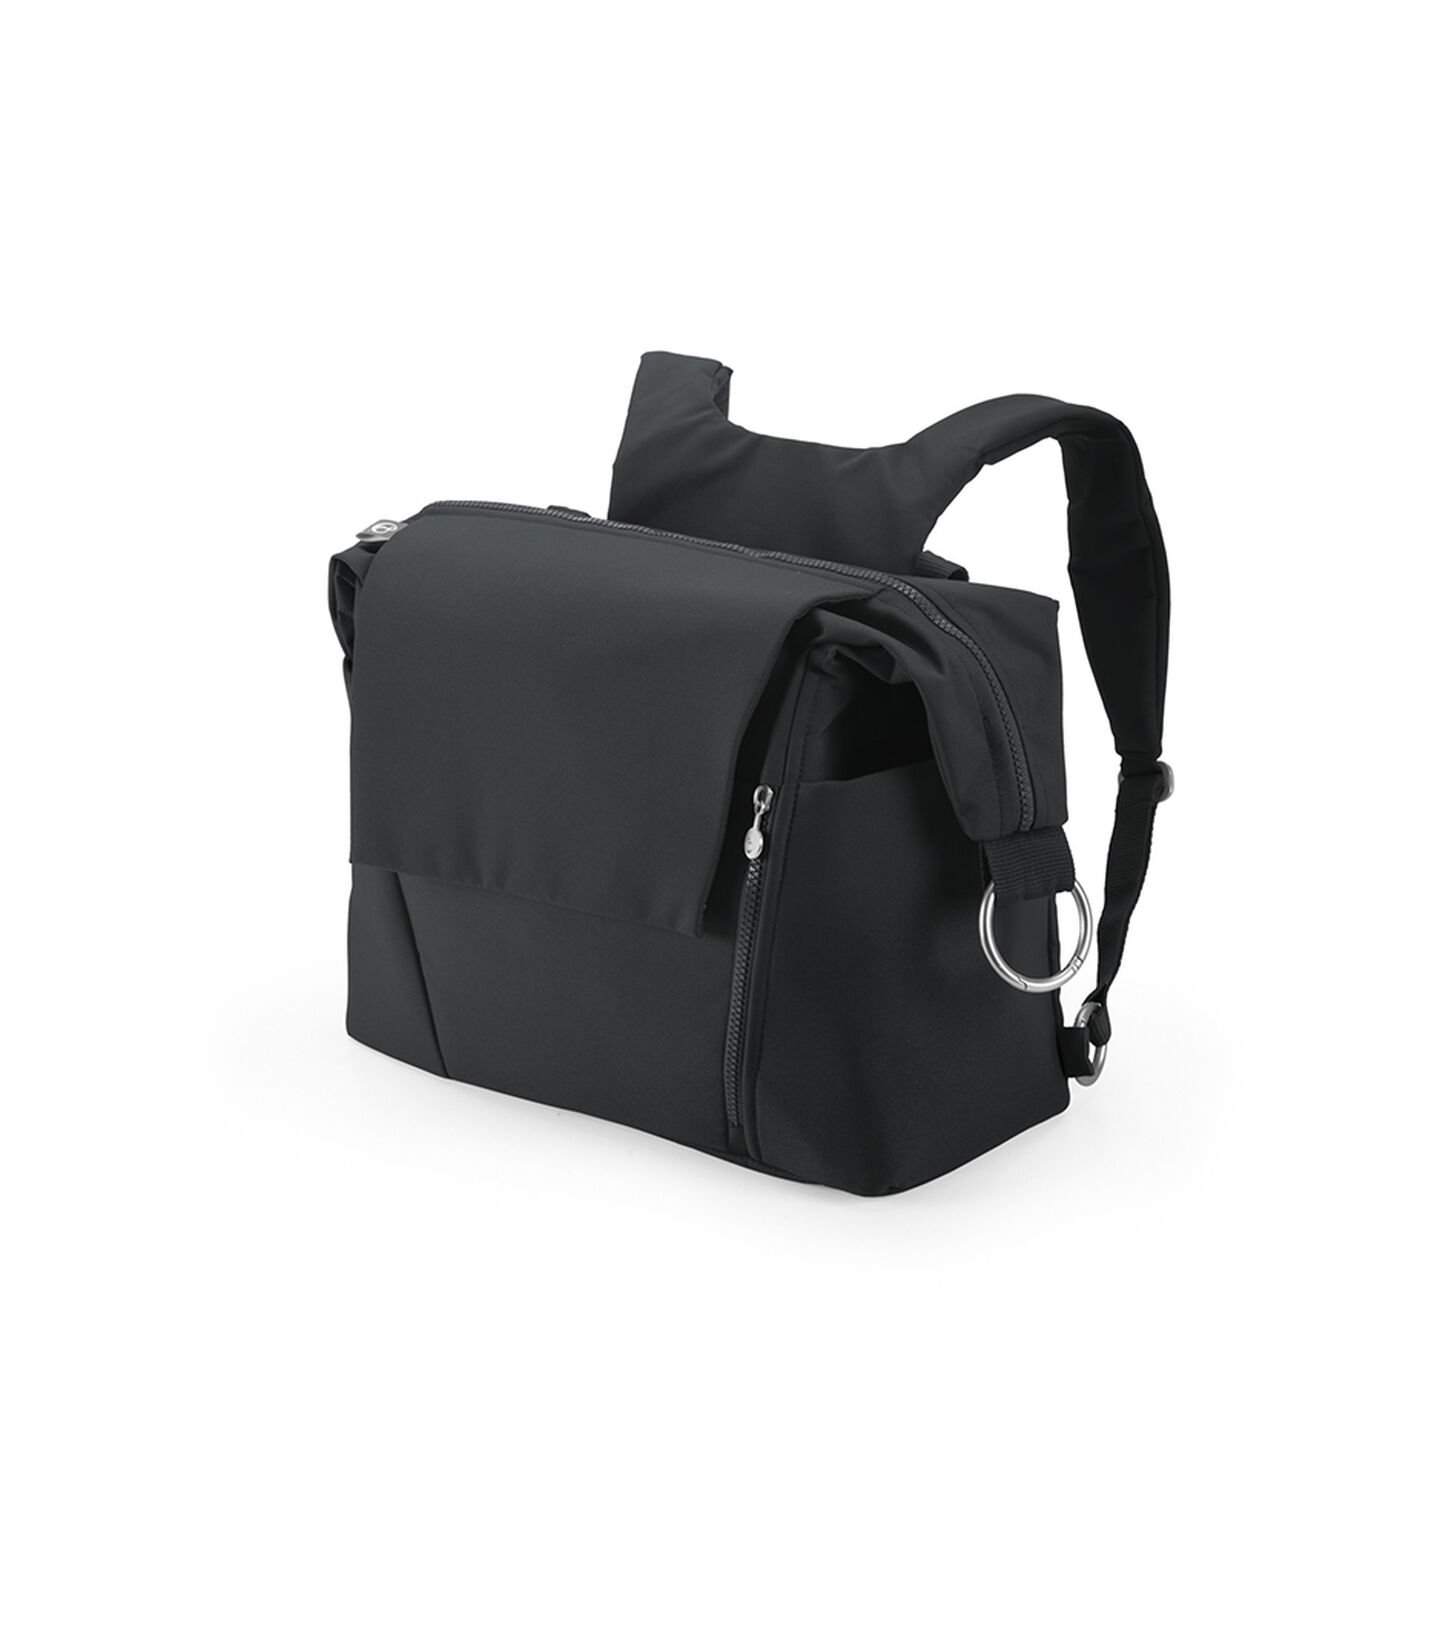 Stokke® Changing Bag Black, Black, mainview